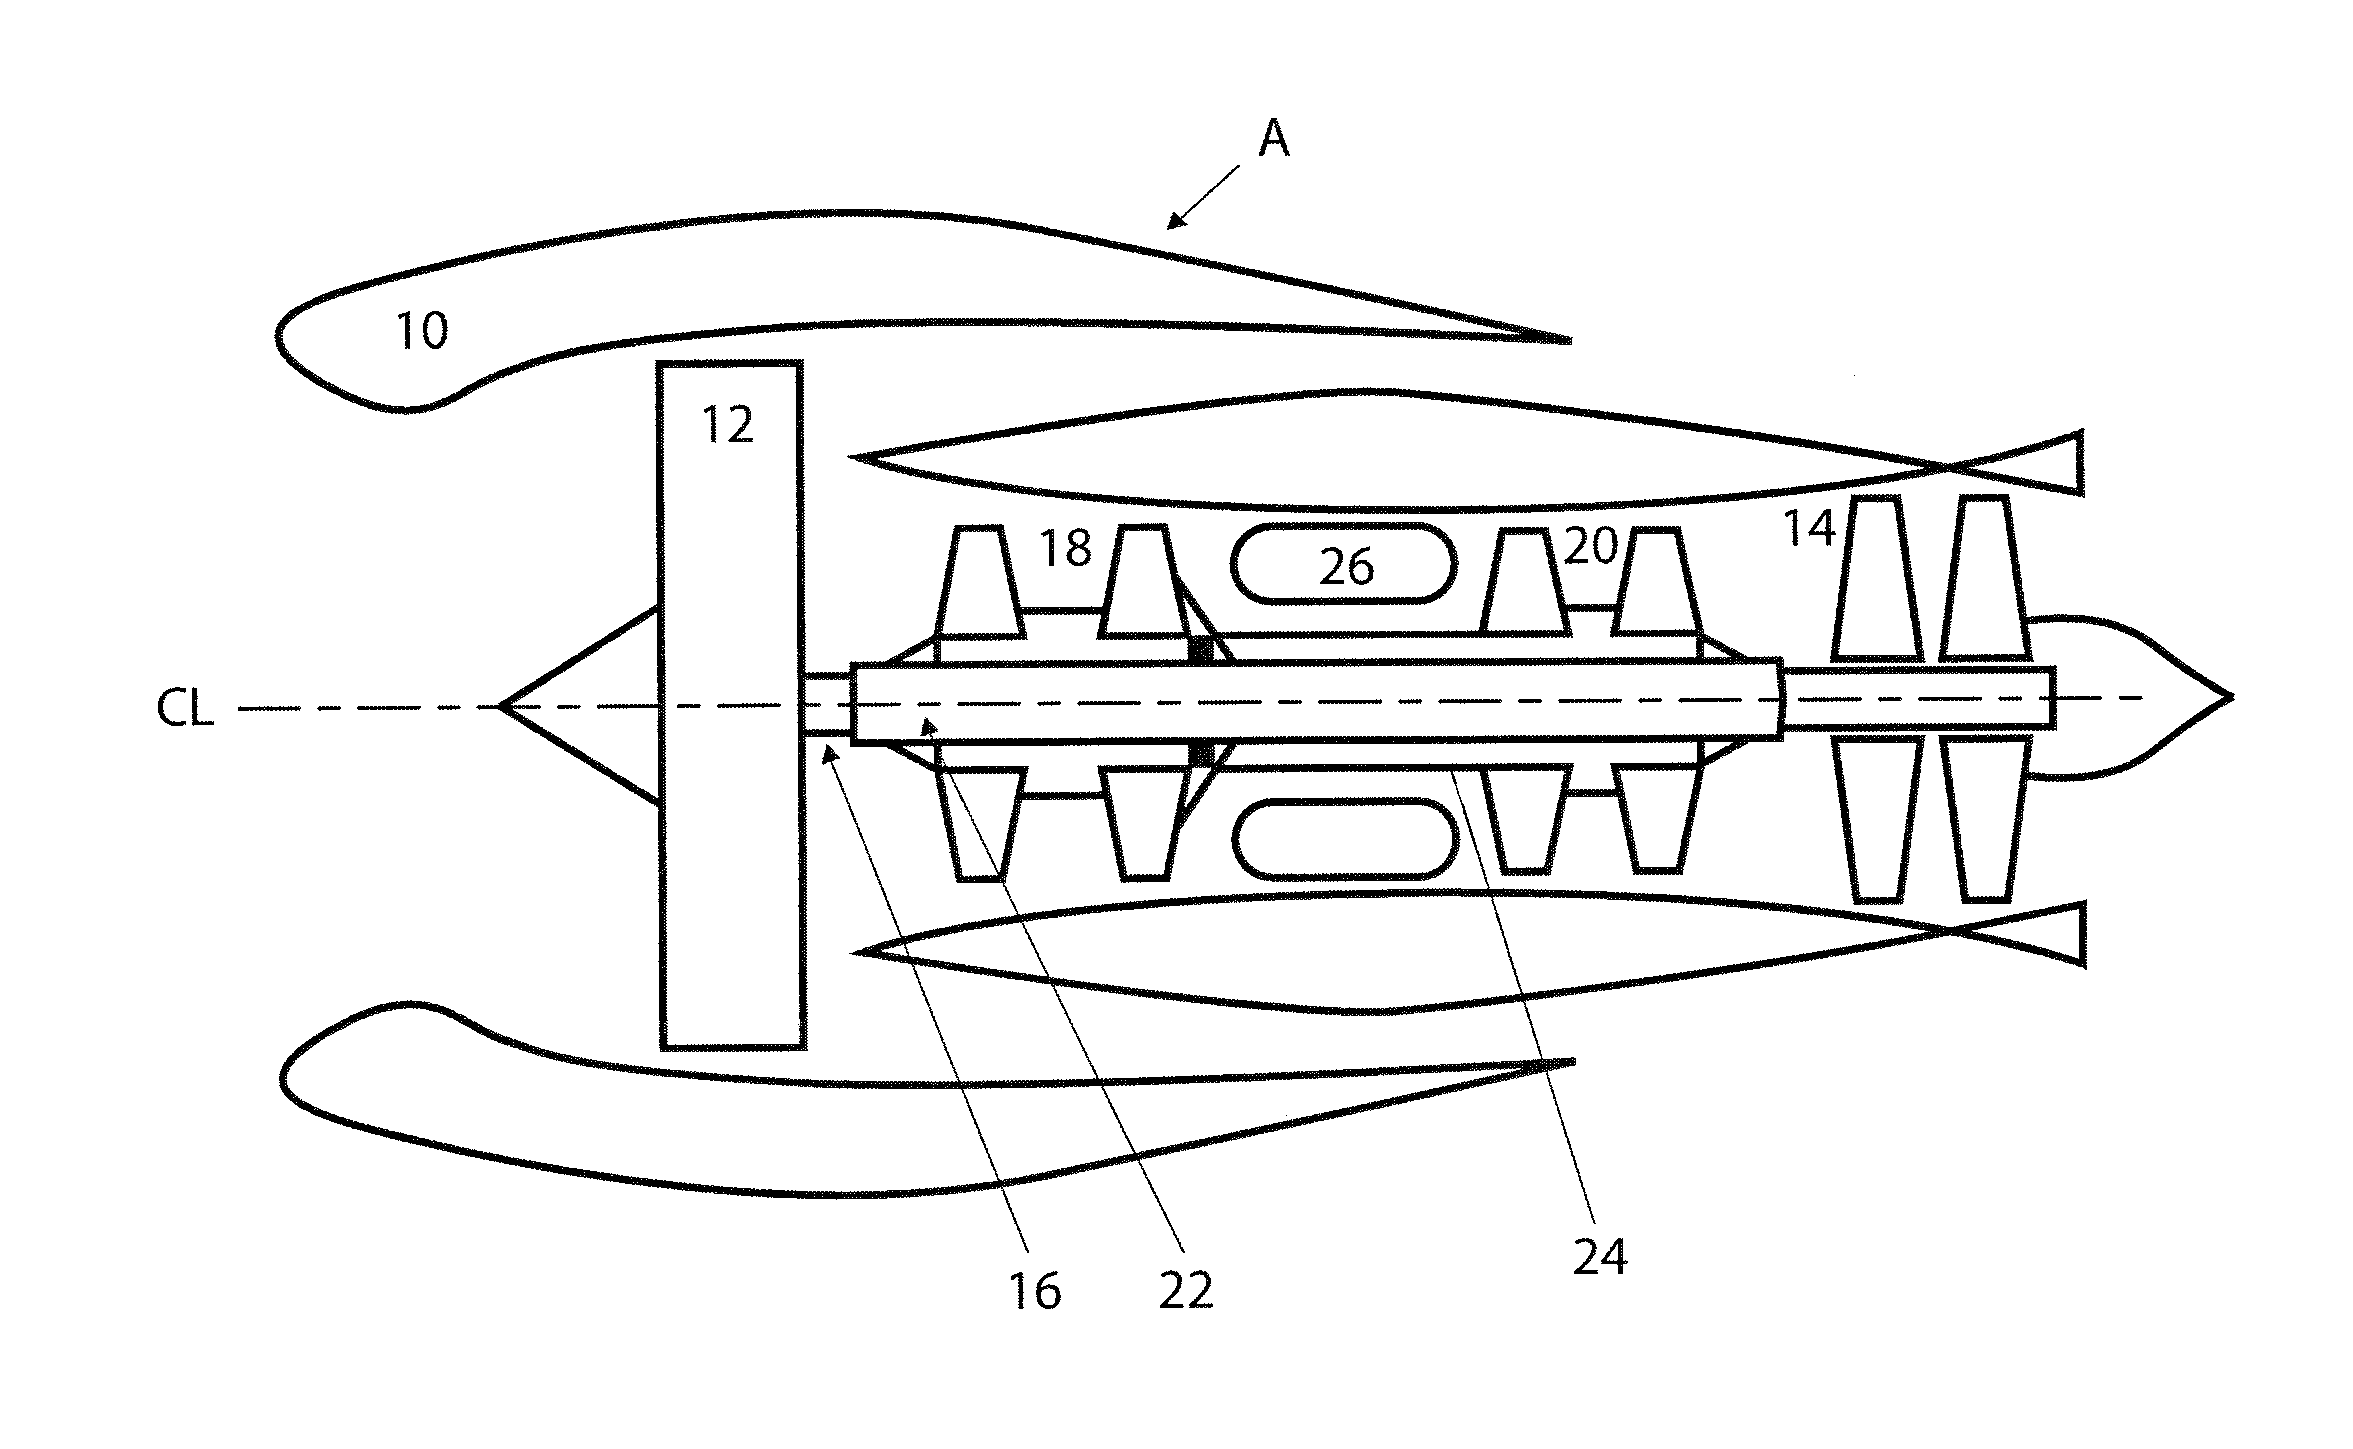 Patent US Rotor blades for gas turbine engines